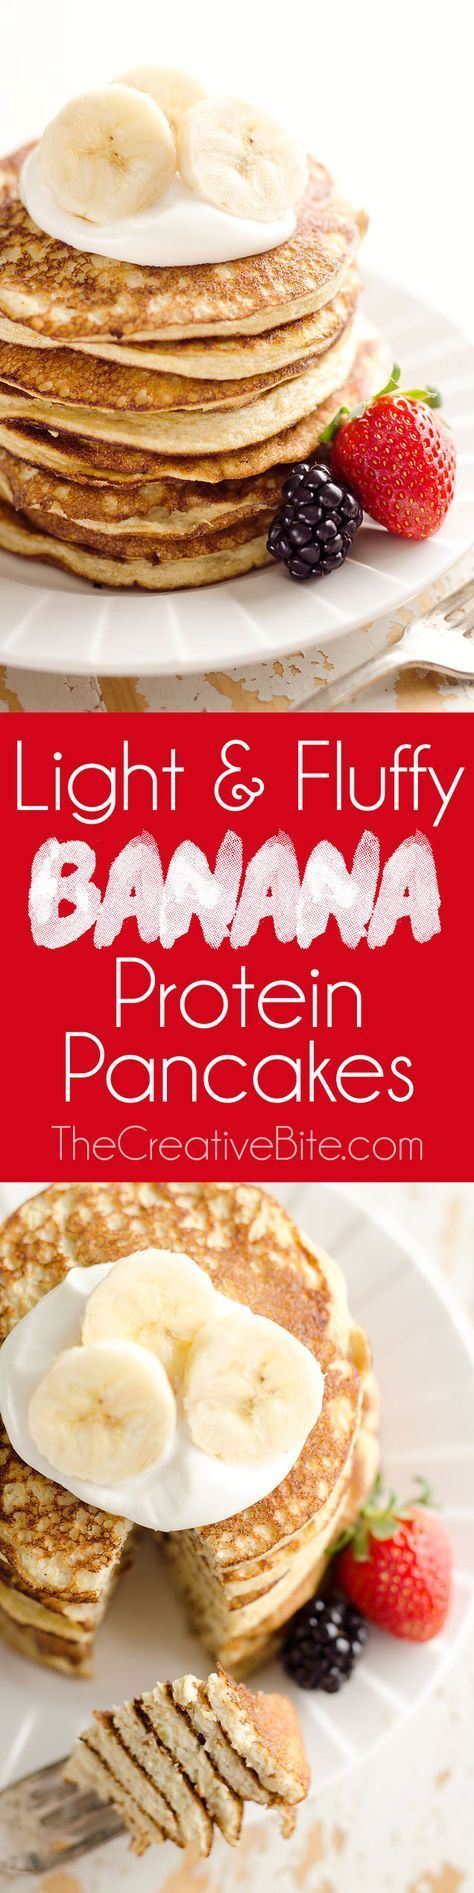 Light & Fluffy Banana Protein Pancakes are a healthy breakfast with five simple ingredients that taste amazing and fill you up! Egg whites, protein powder and ripe bananas make up these low-fat and low-carb pancakes, for a complete and wholesome meal under 200 calories. #Vegetarian #LowCarb #Healthy